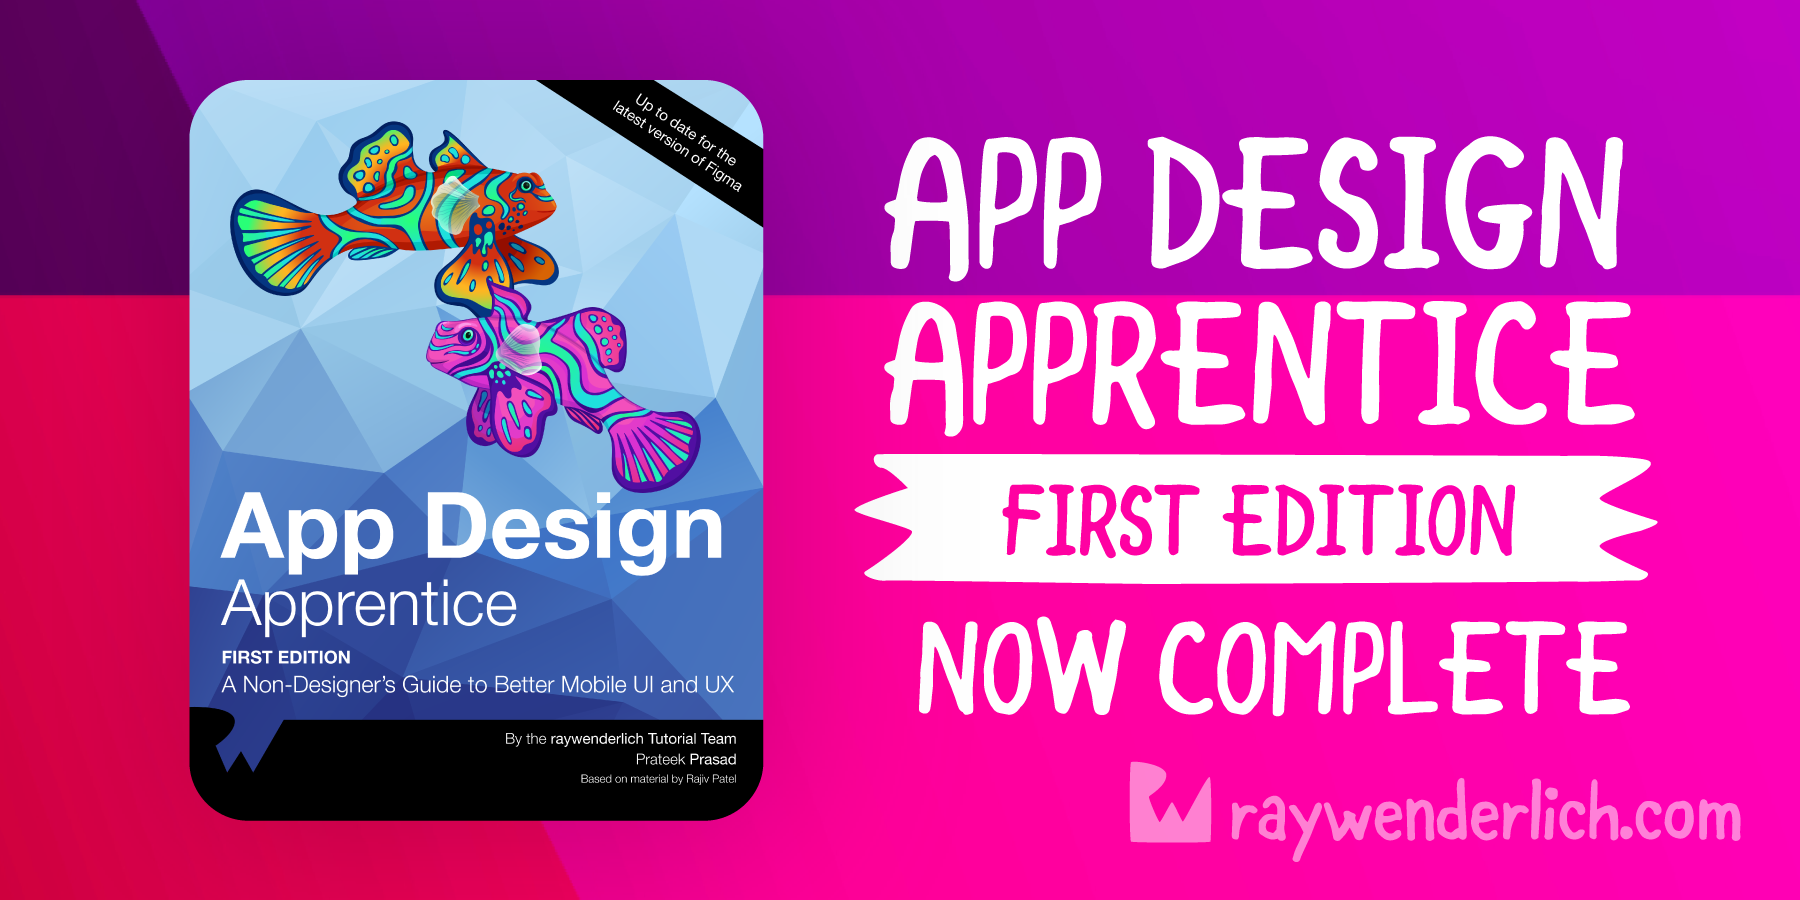 Announcing App Design Apprentice, First Edition! [FREE]